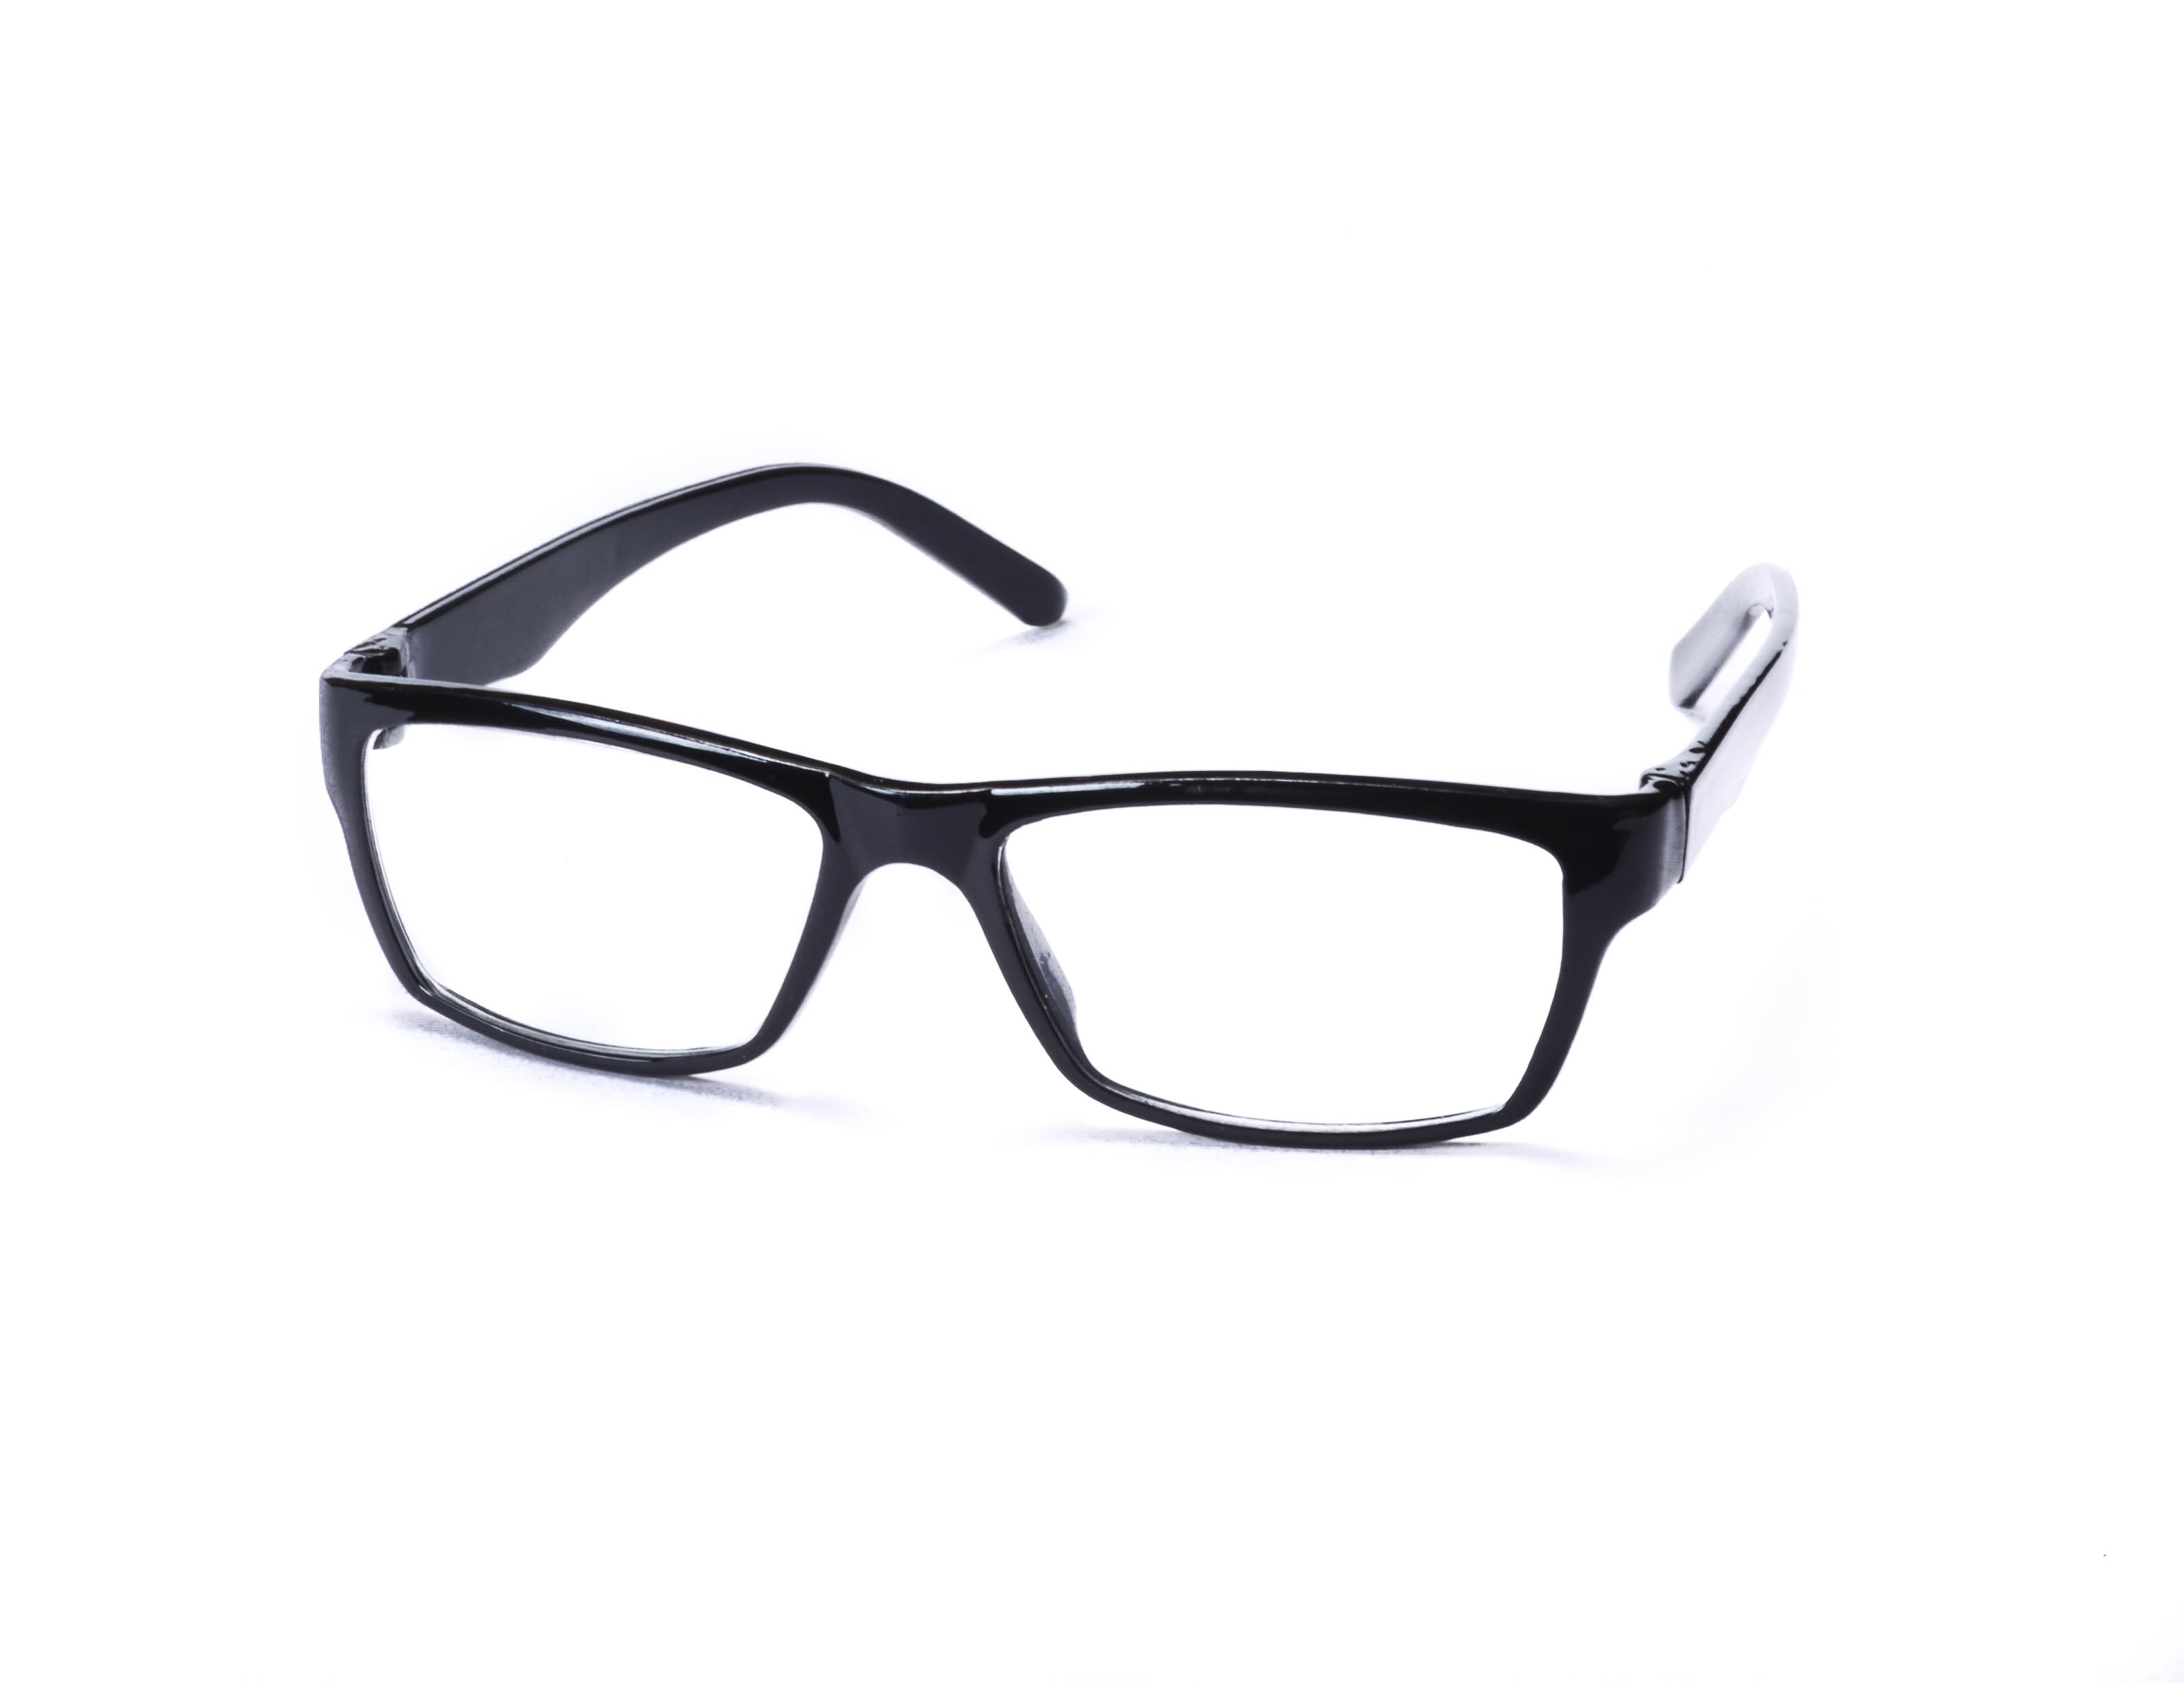 Super Traders St Black Frame And Black Temple  Combination Spectacle Frames  For Men And Women-Stfrm071